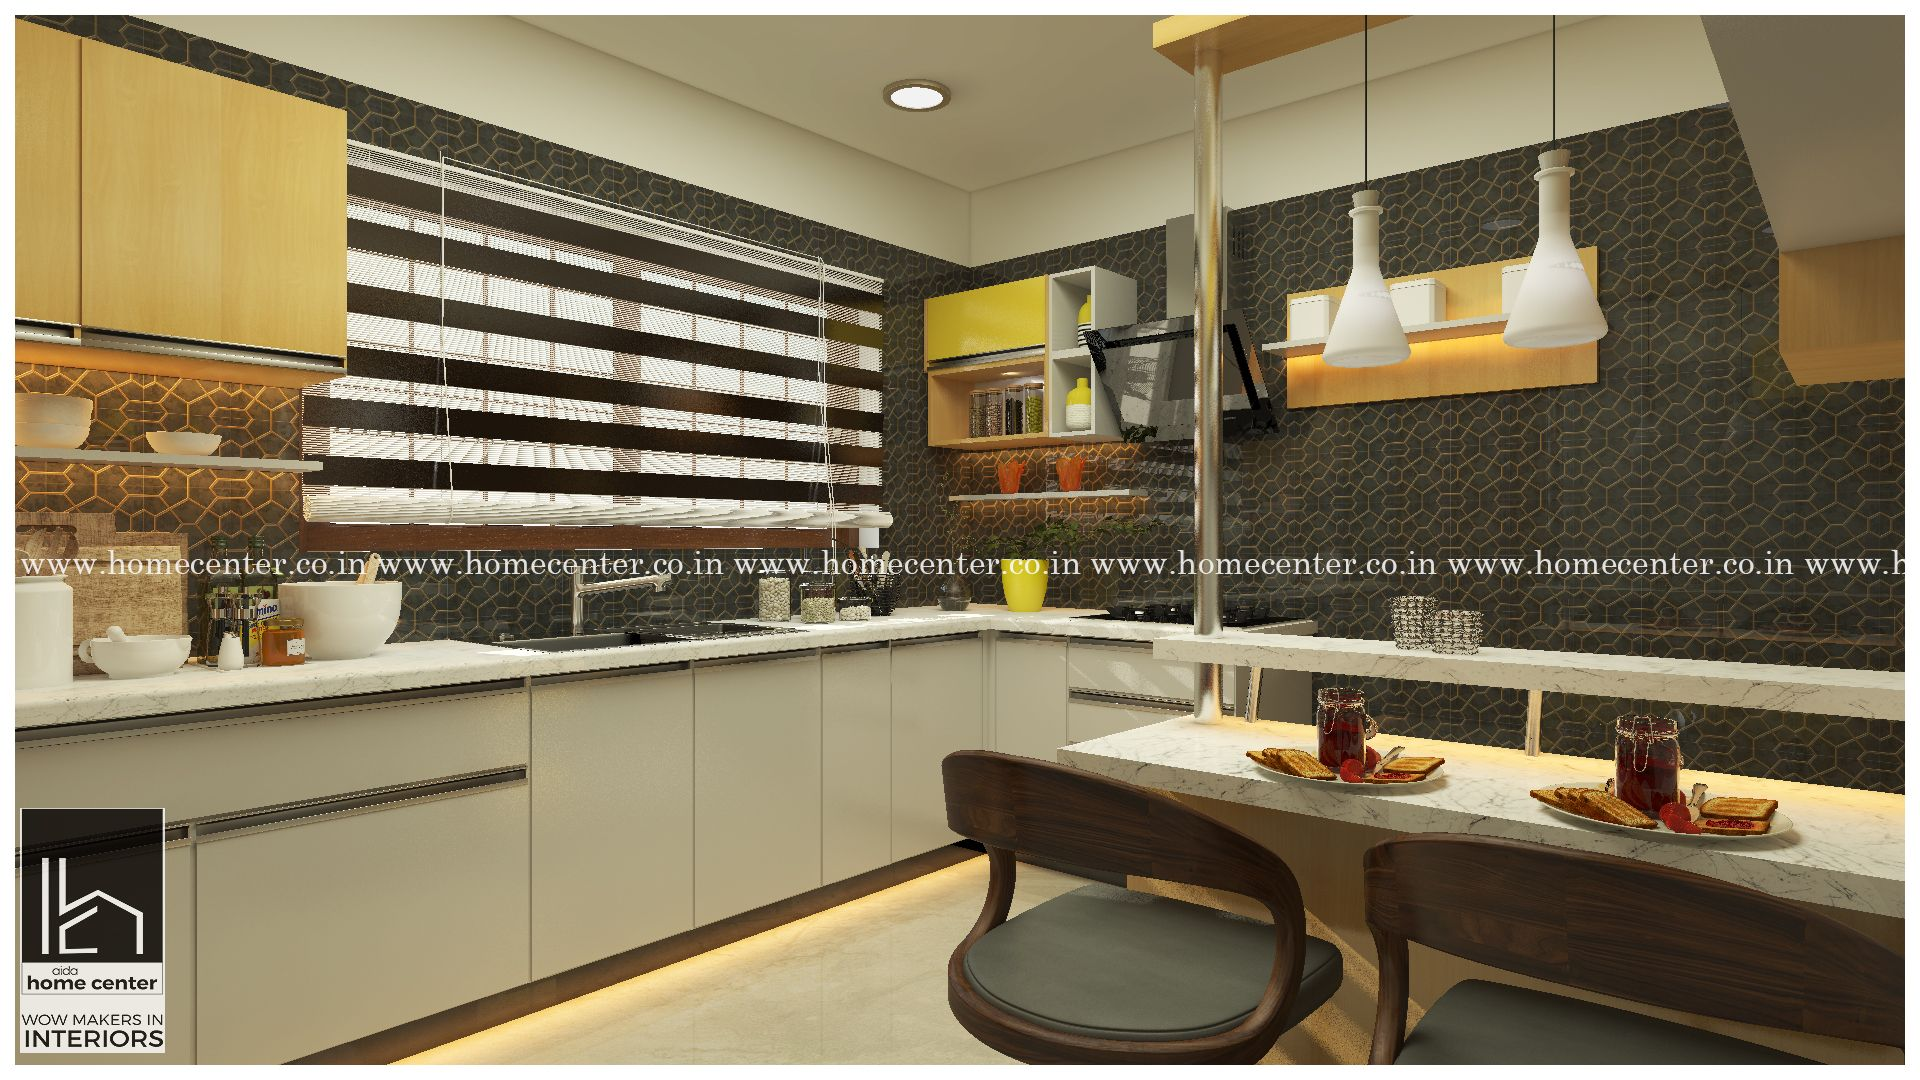 Visit Www Homecenter Co In Interiordesign Design Interior